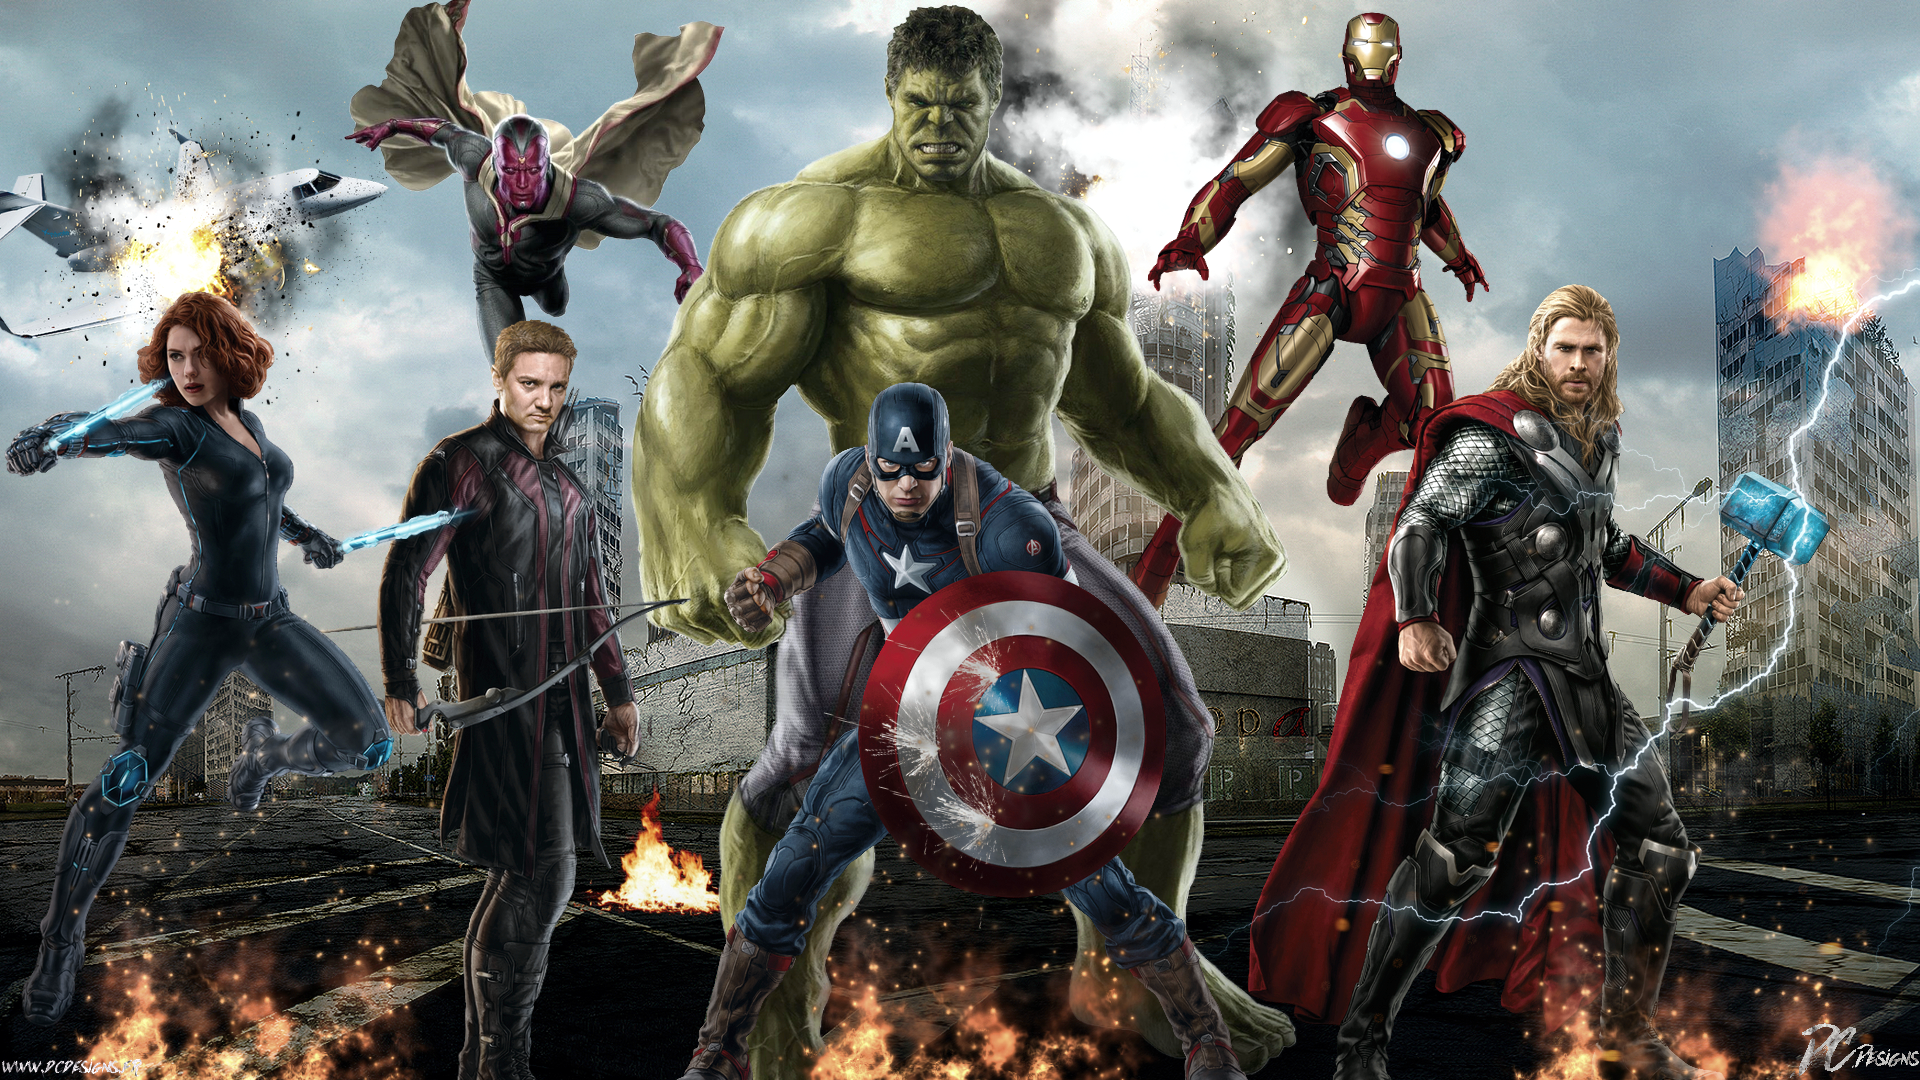 Movie Avengers Age Of Ultron Age Of Ultron Marvel Poster Fan Art The 1920x1080